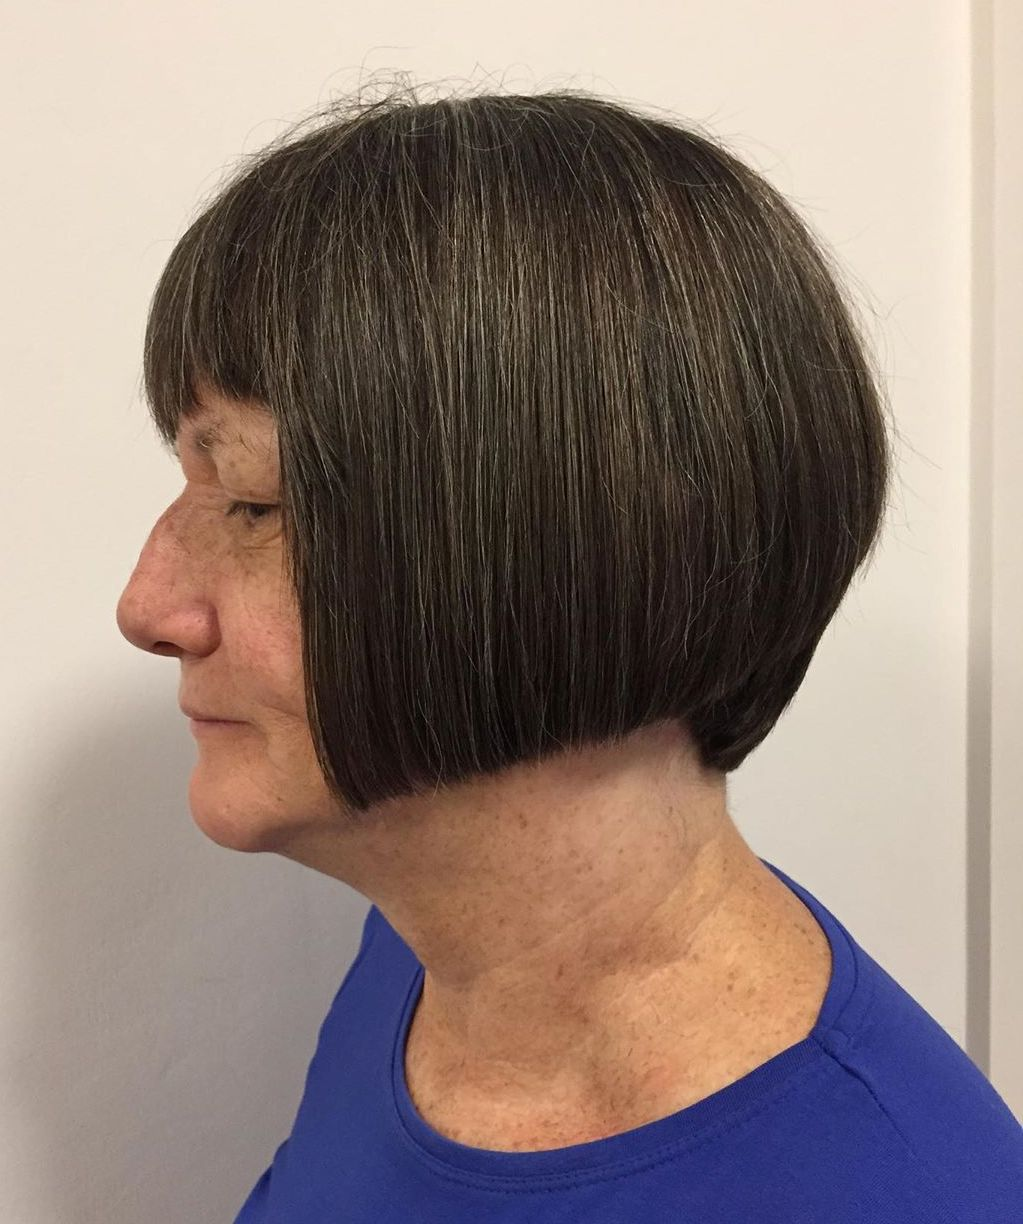 Short Blunt Cut for Women in Their 60s